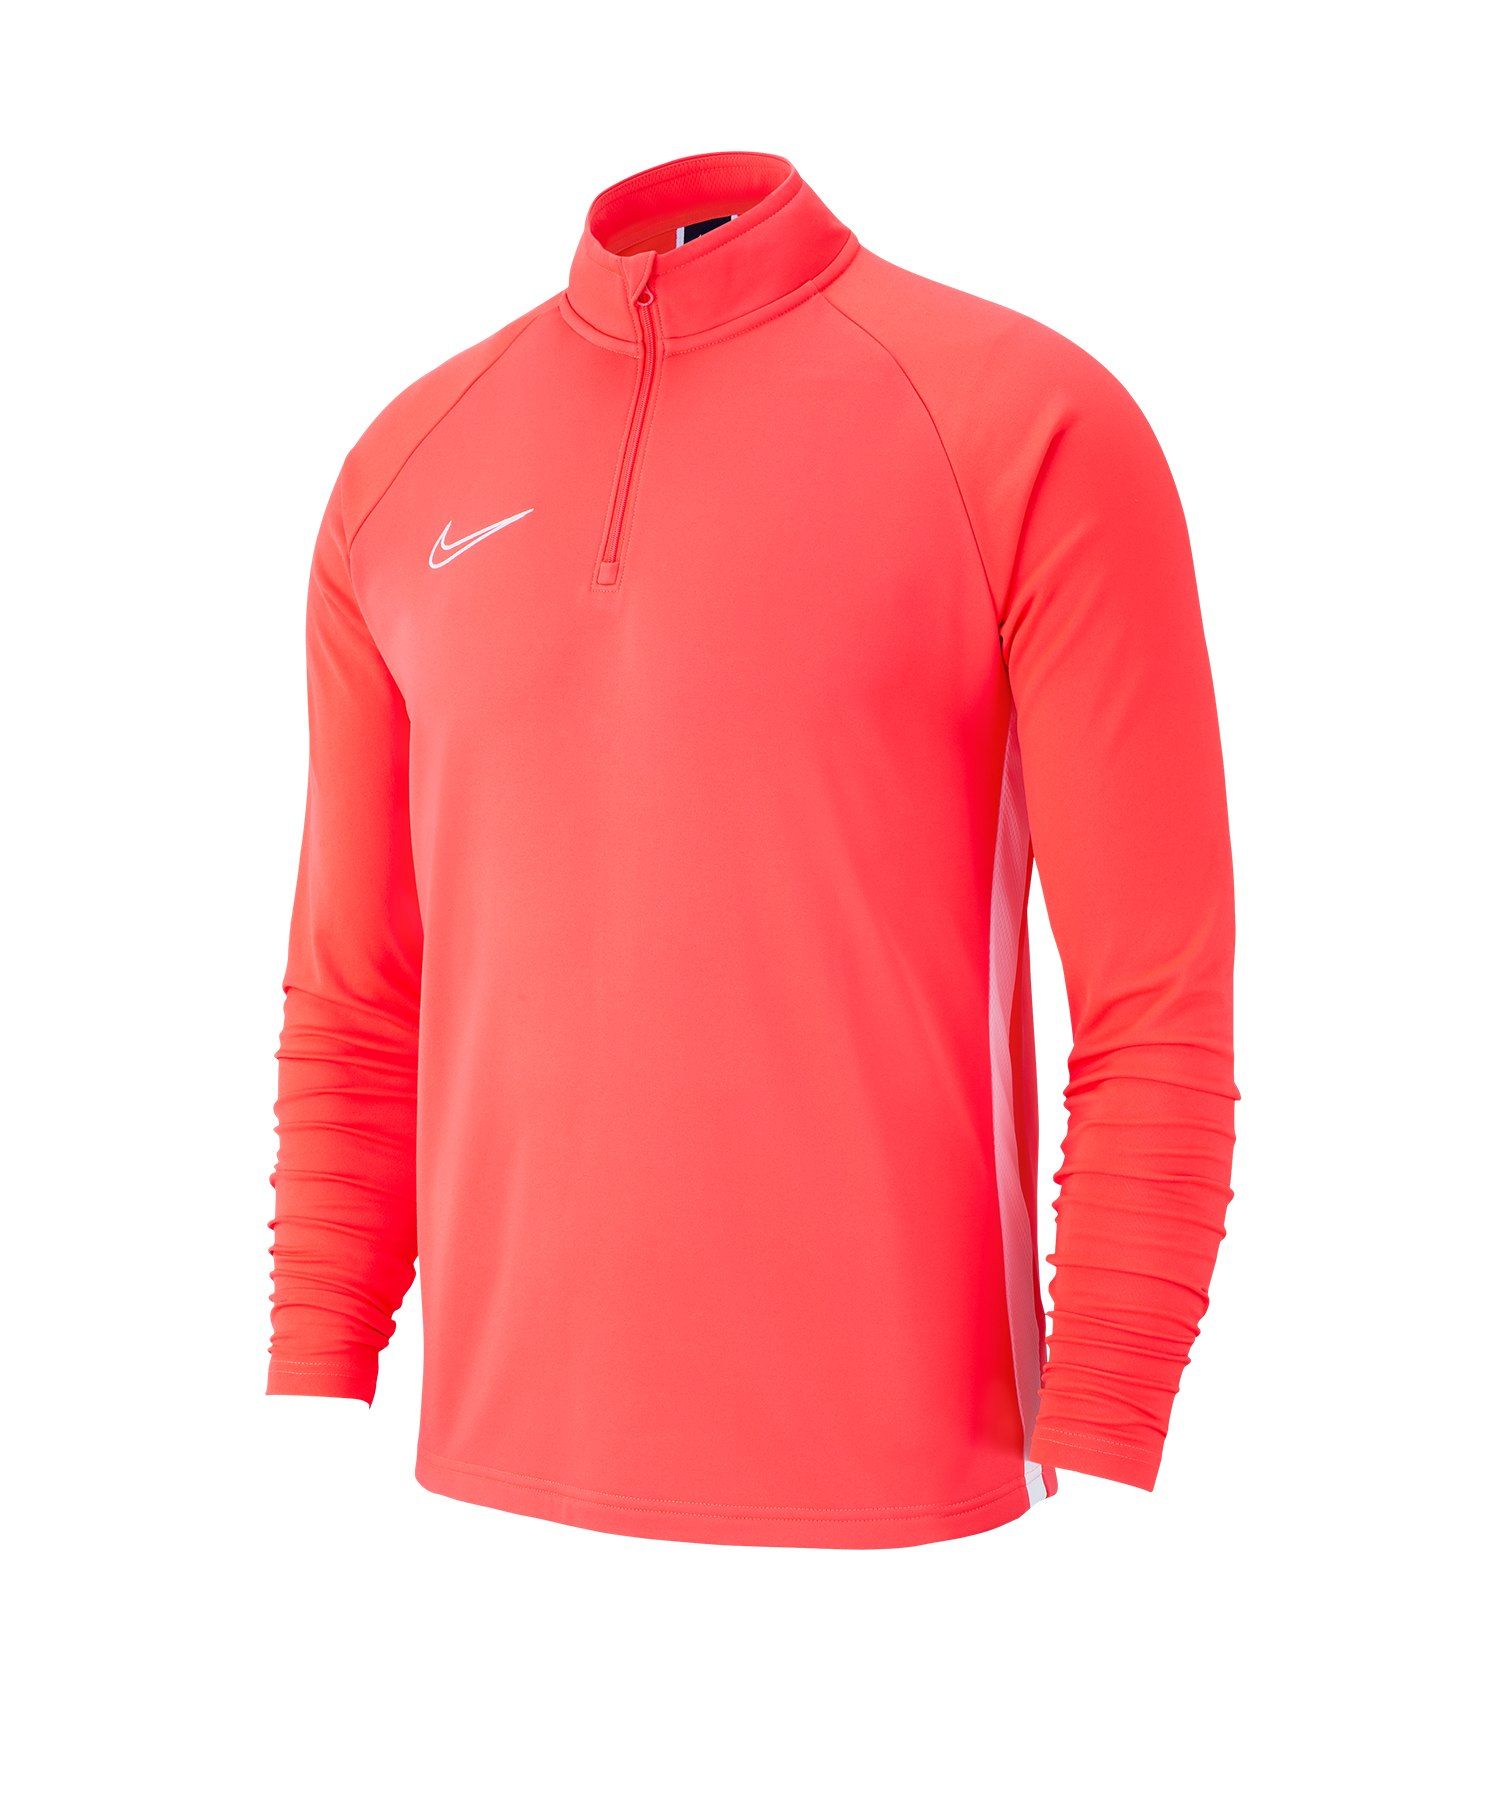 Nike Academy 19 Drill Top